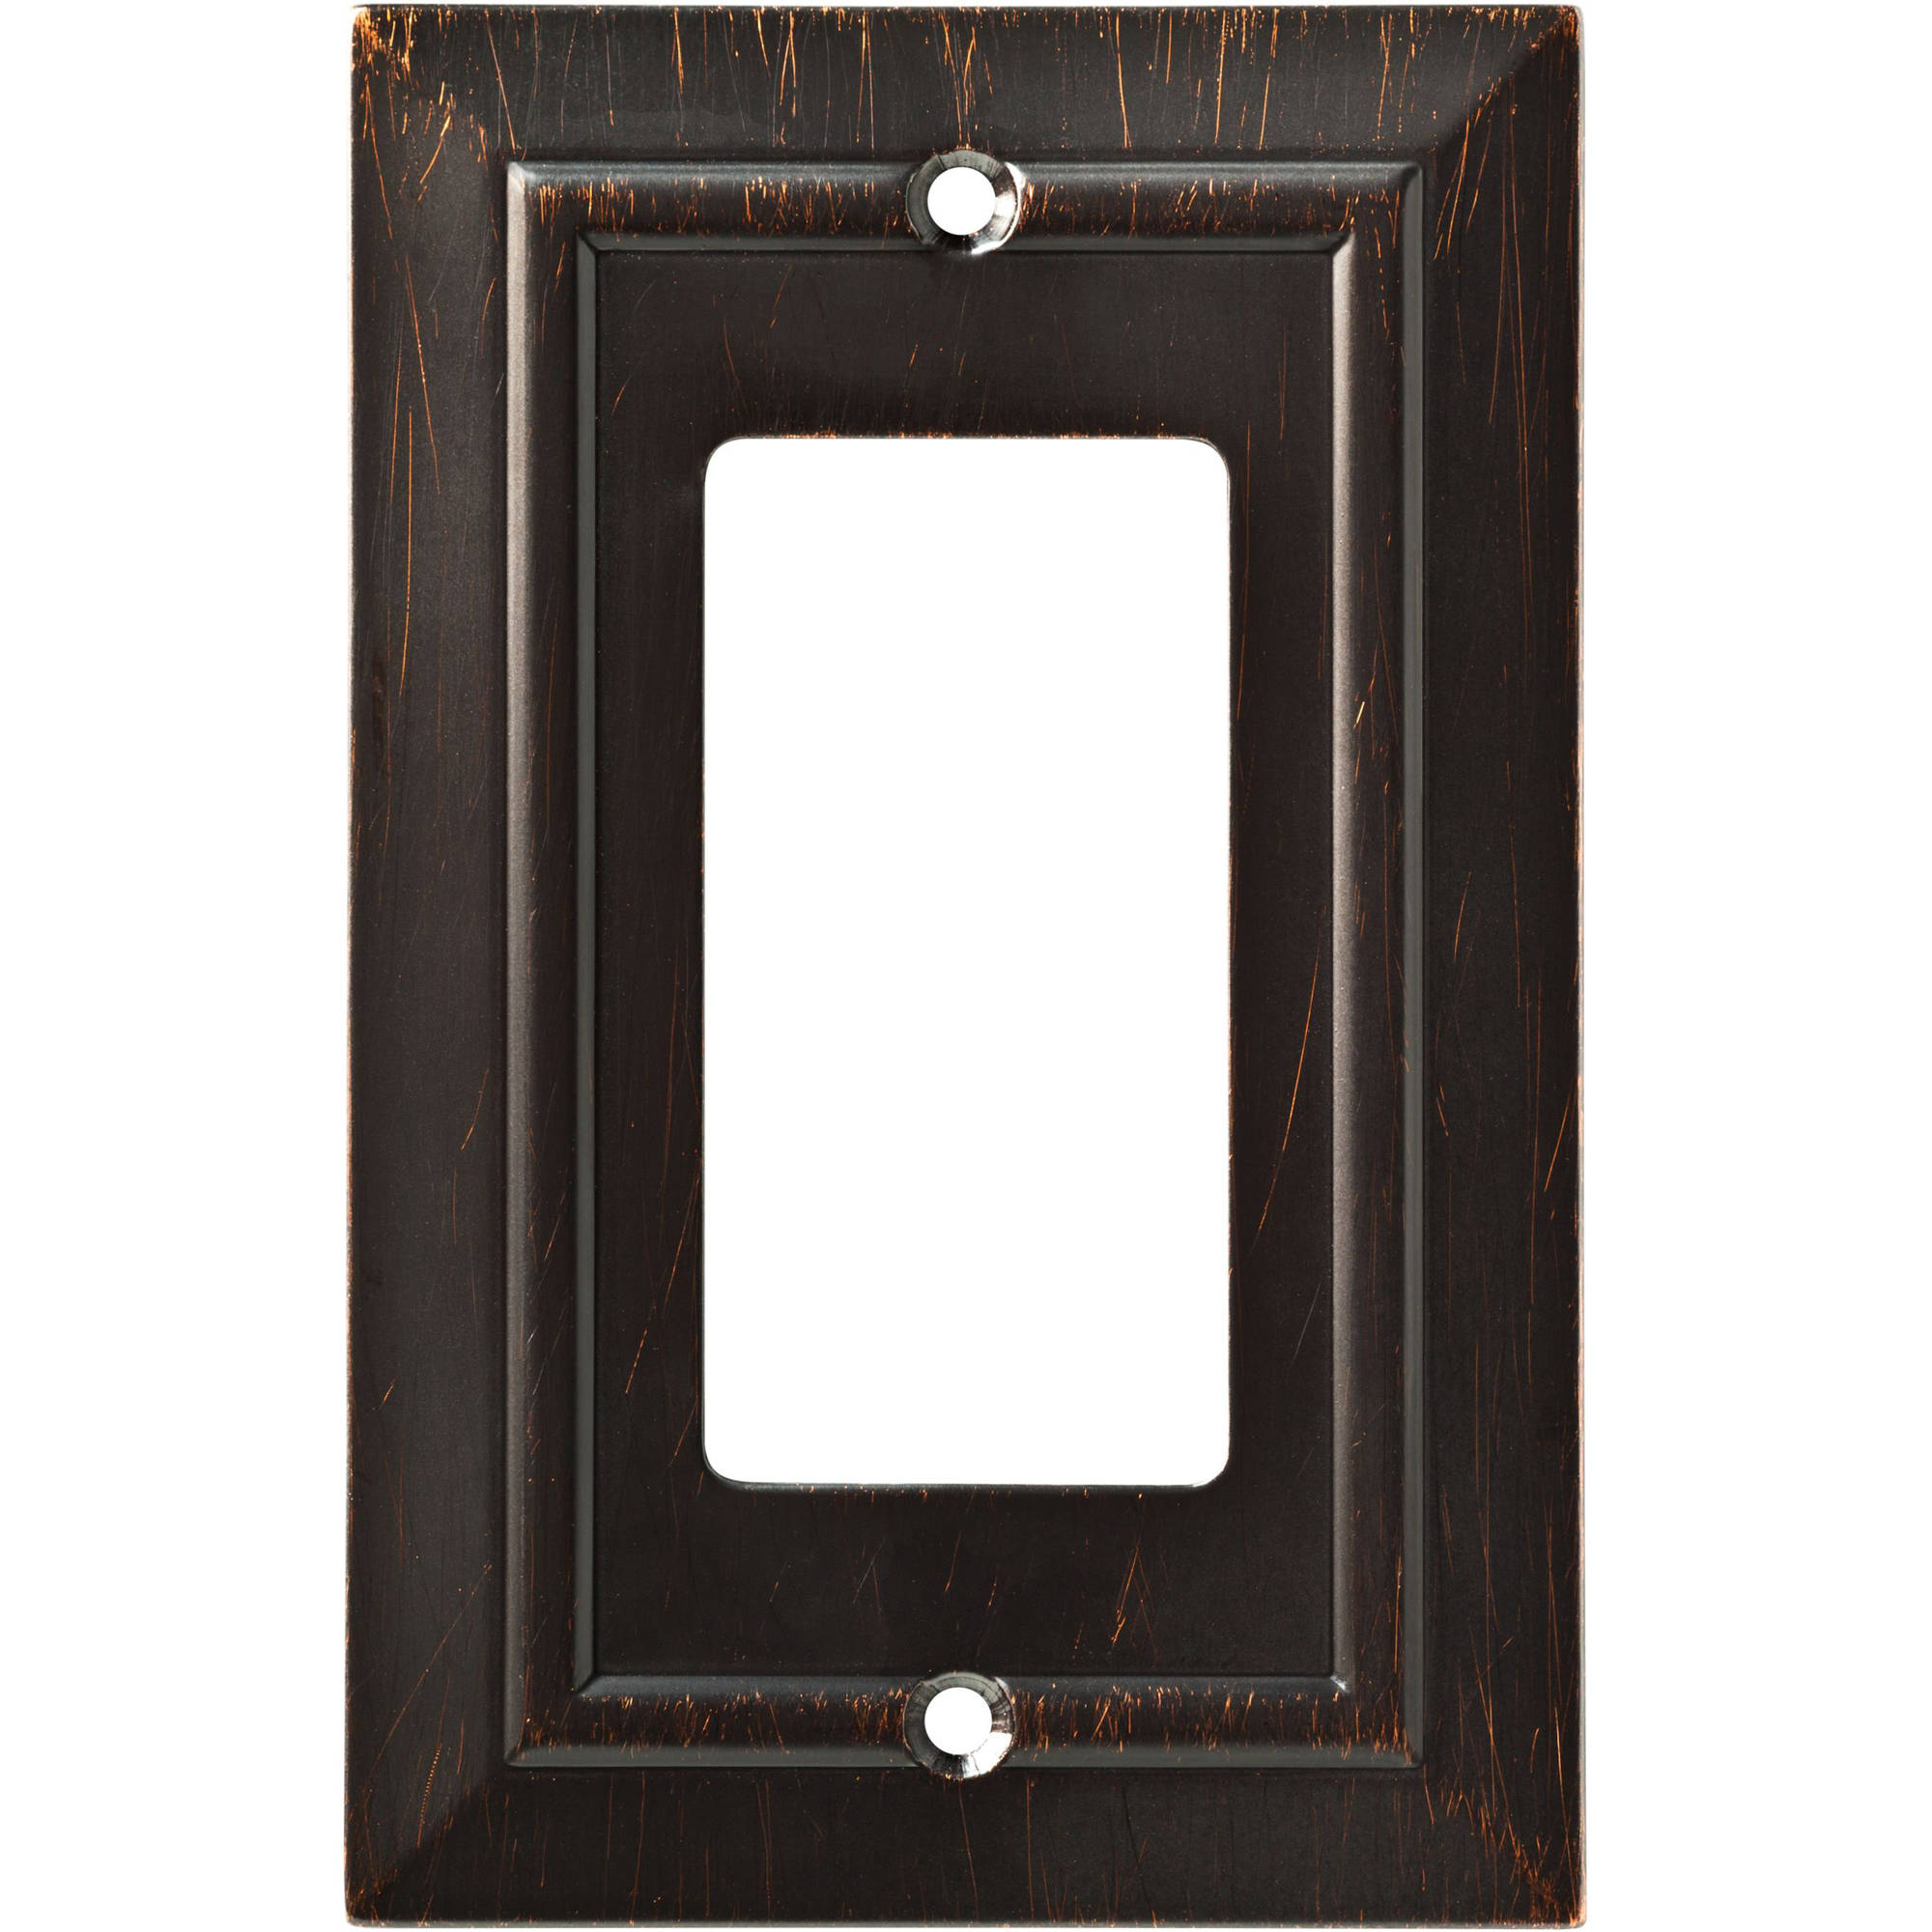 Franklin Brass Classic Architecture Single Rocker Wall Plate